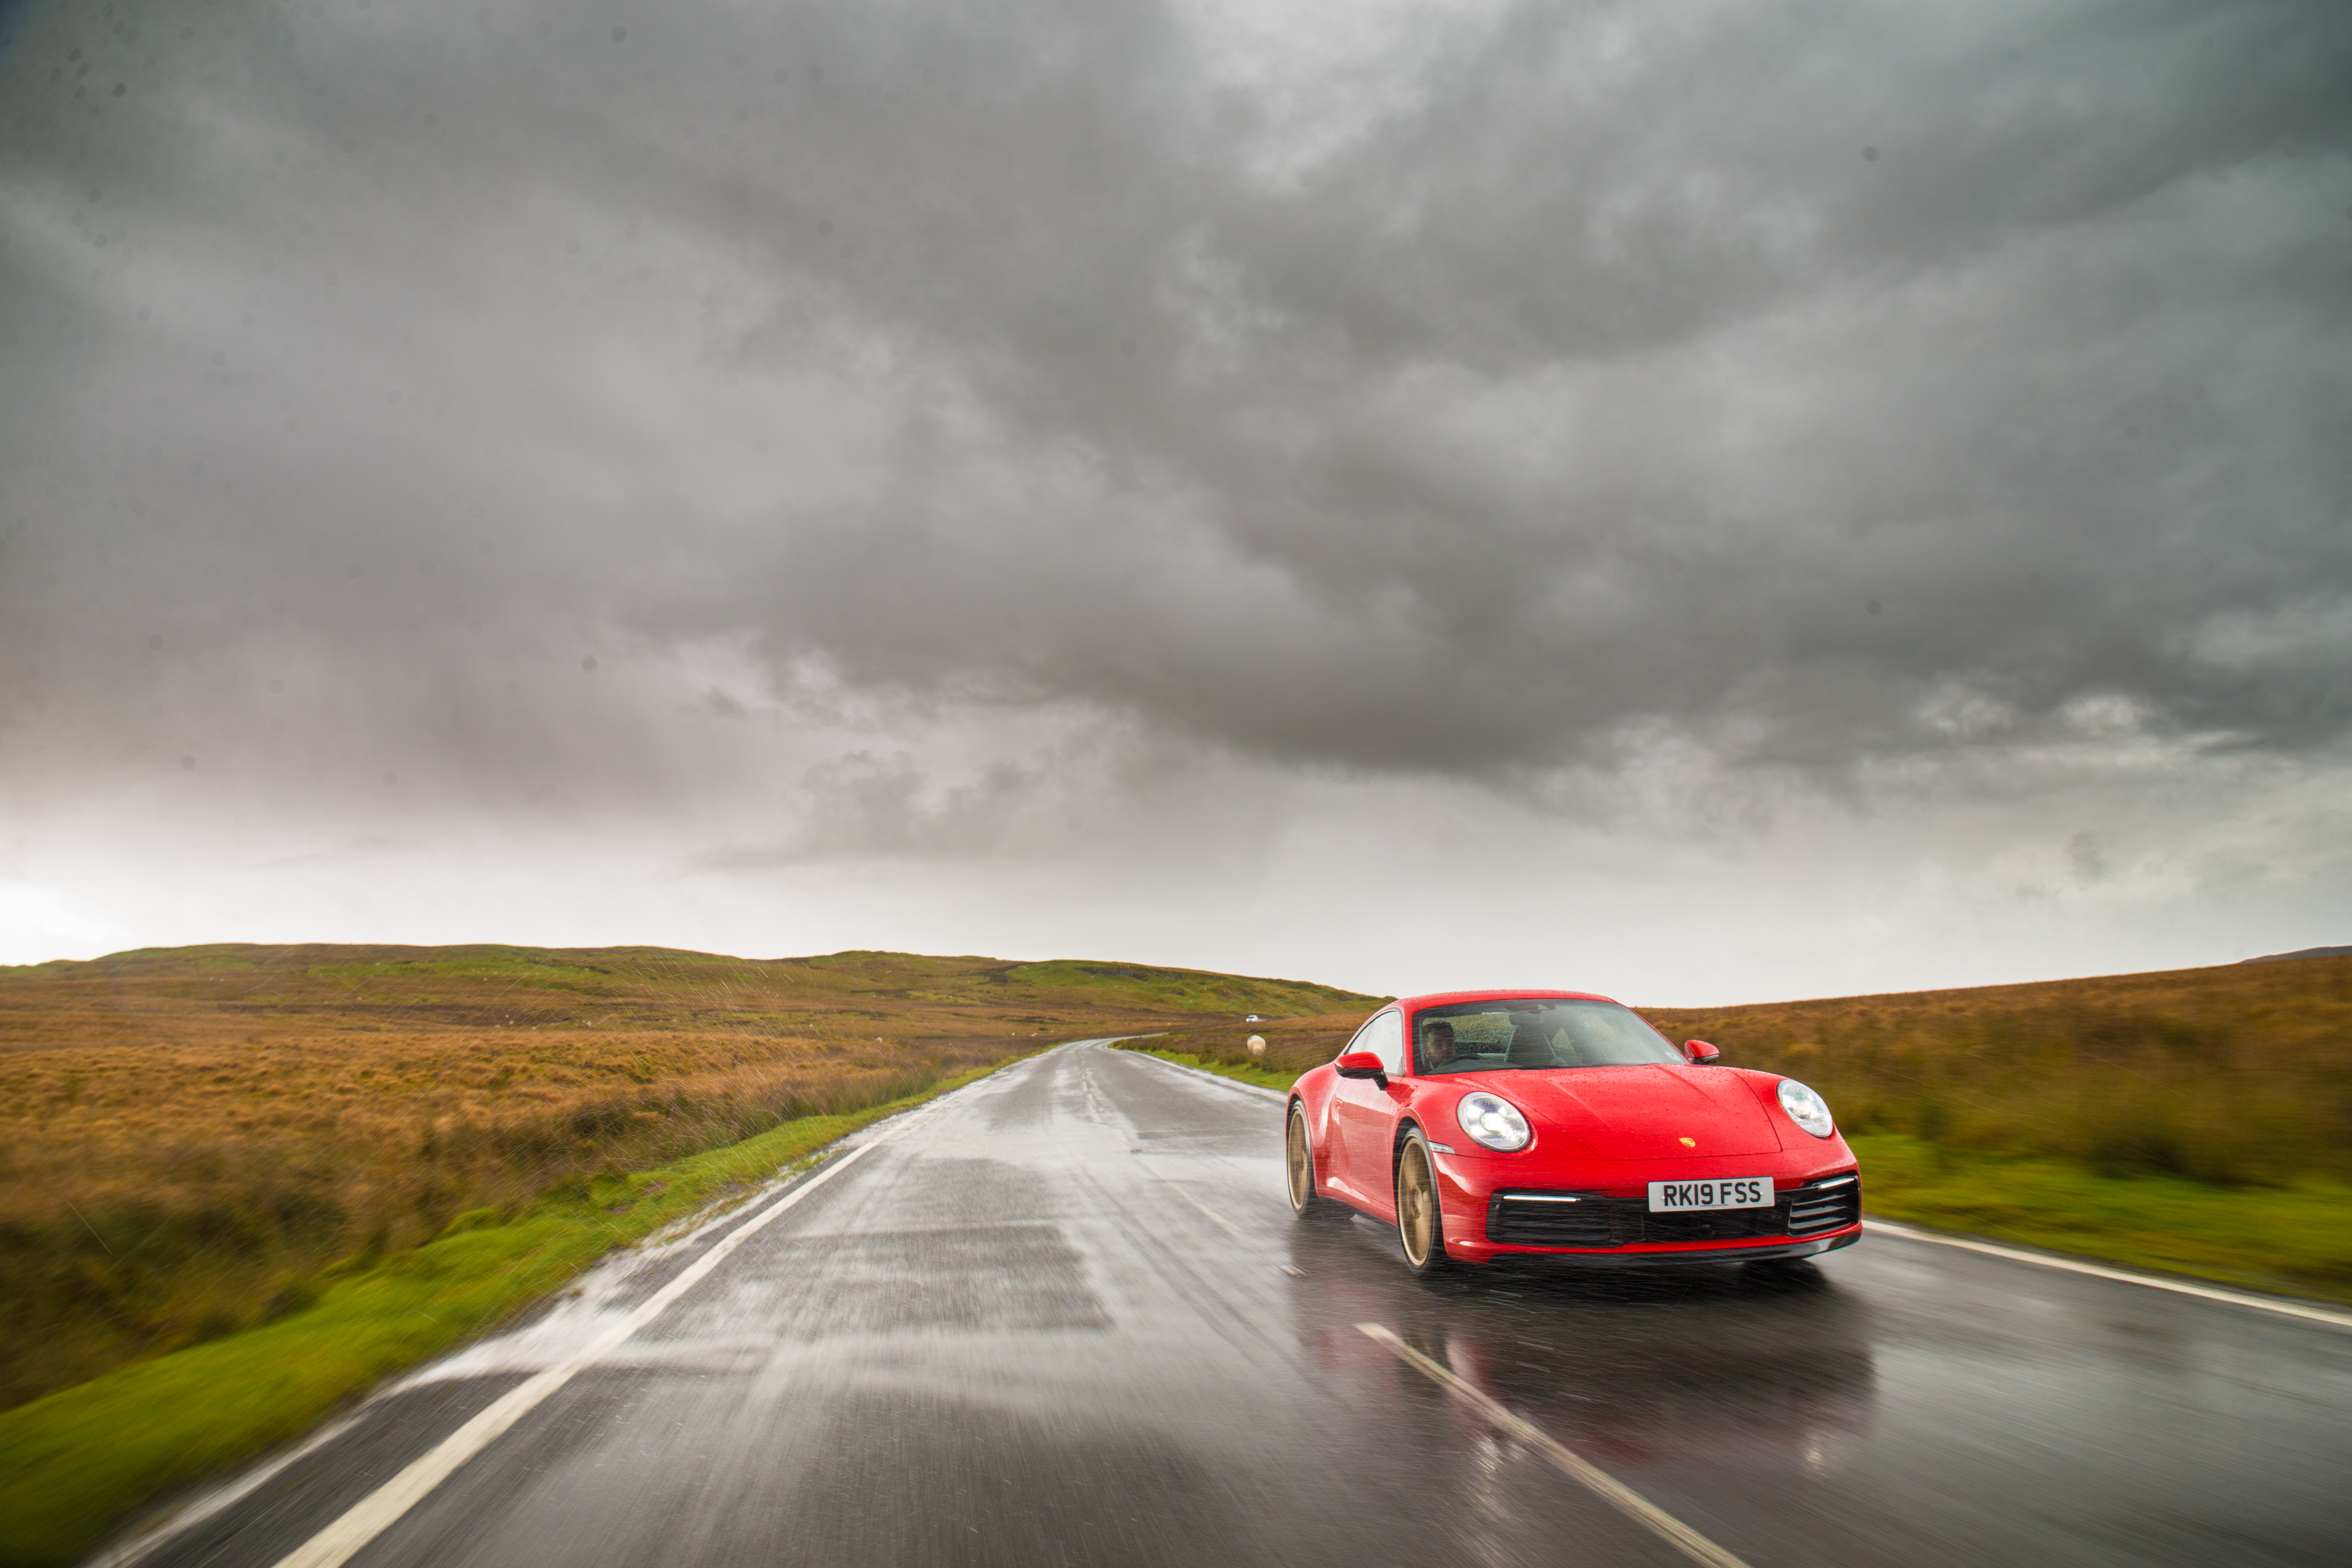 The 911 performed admirably in the wet